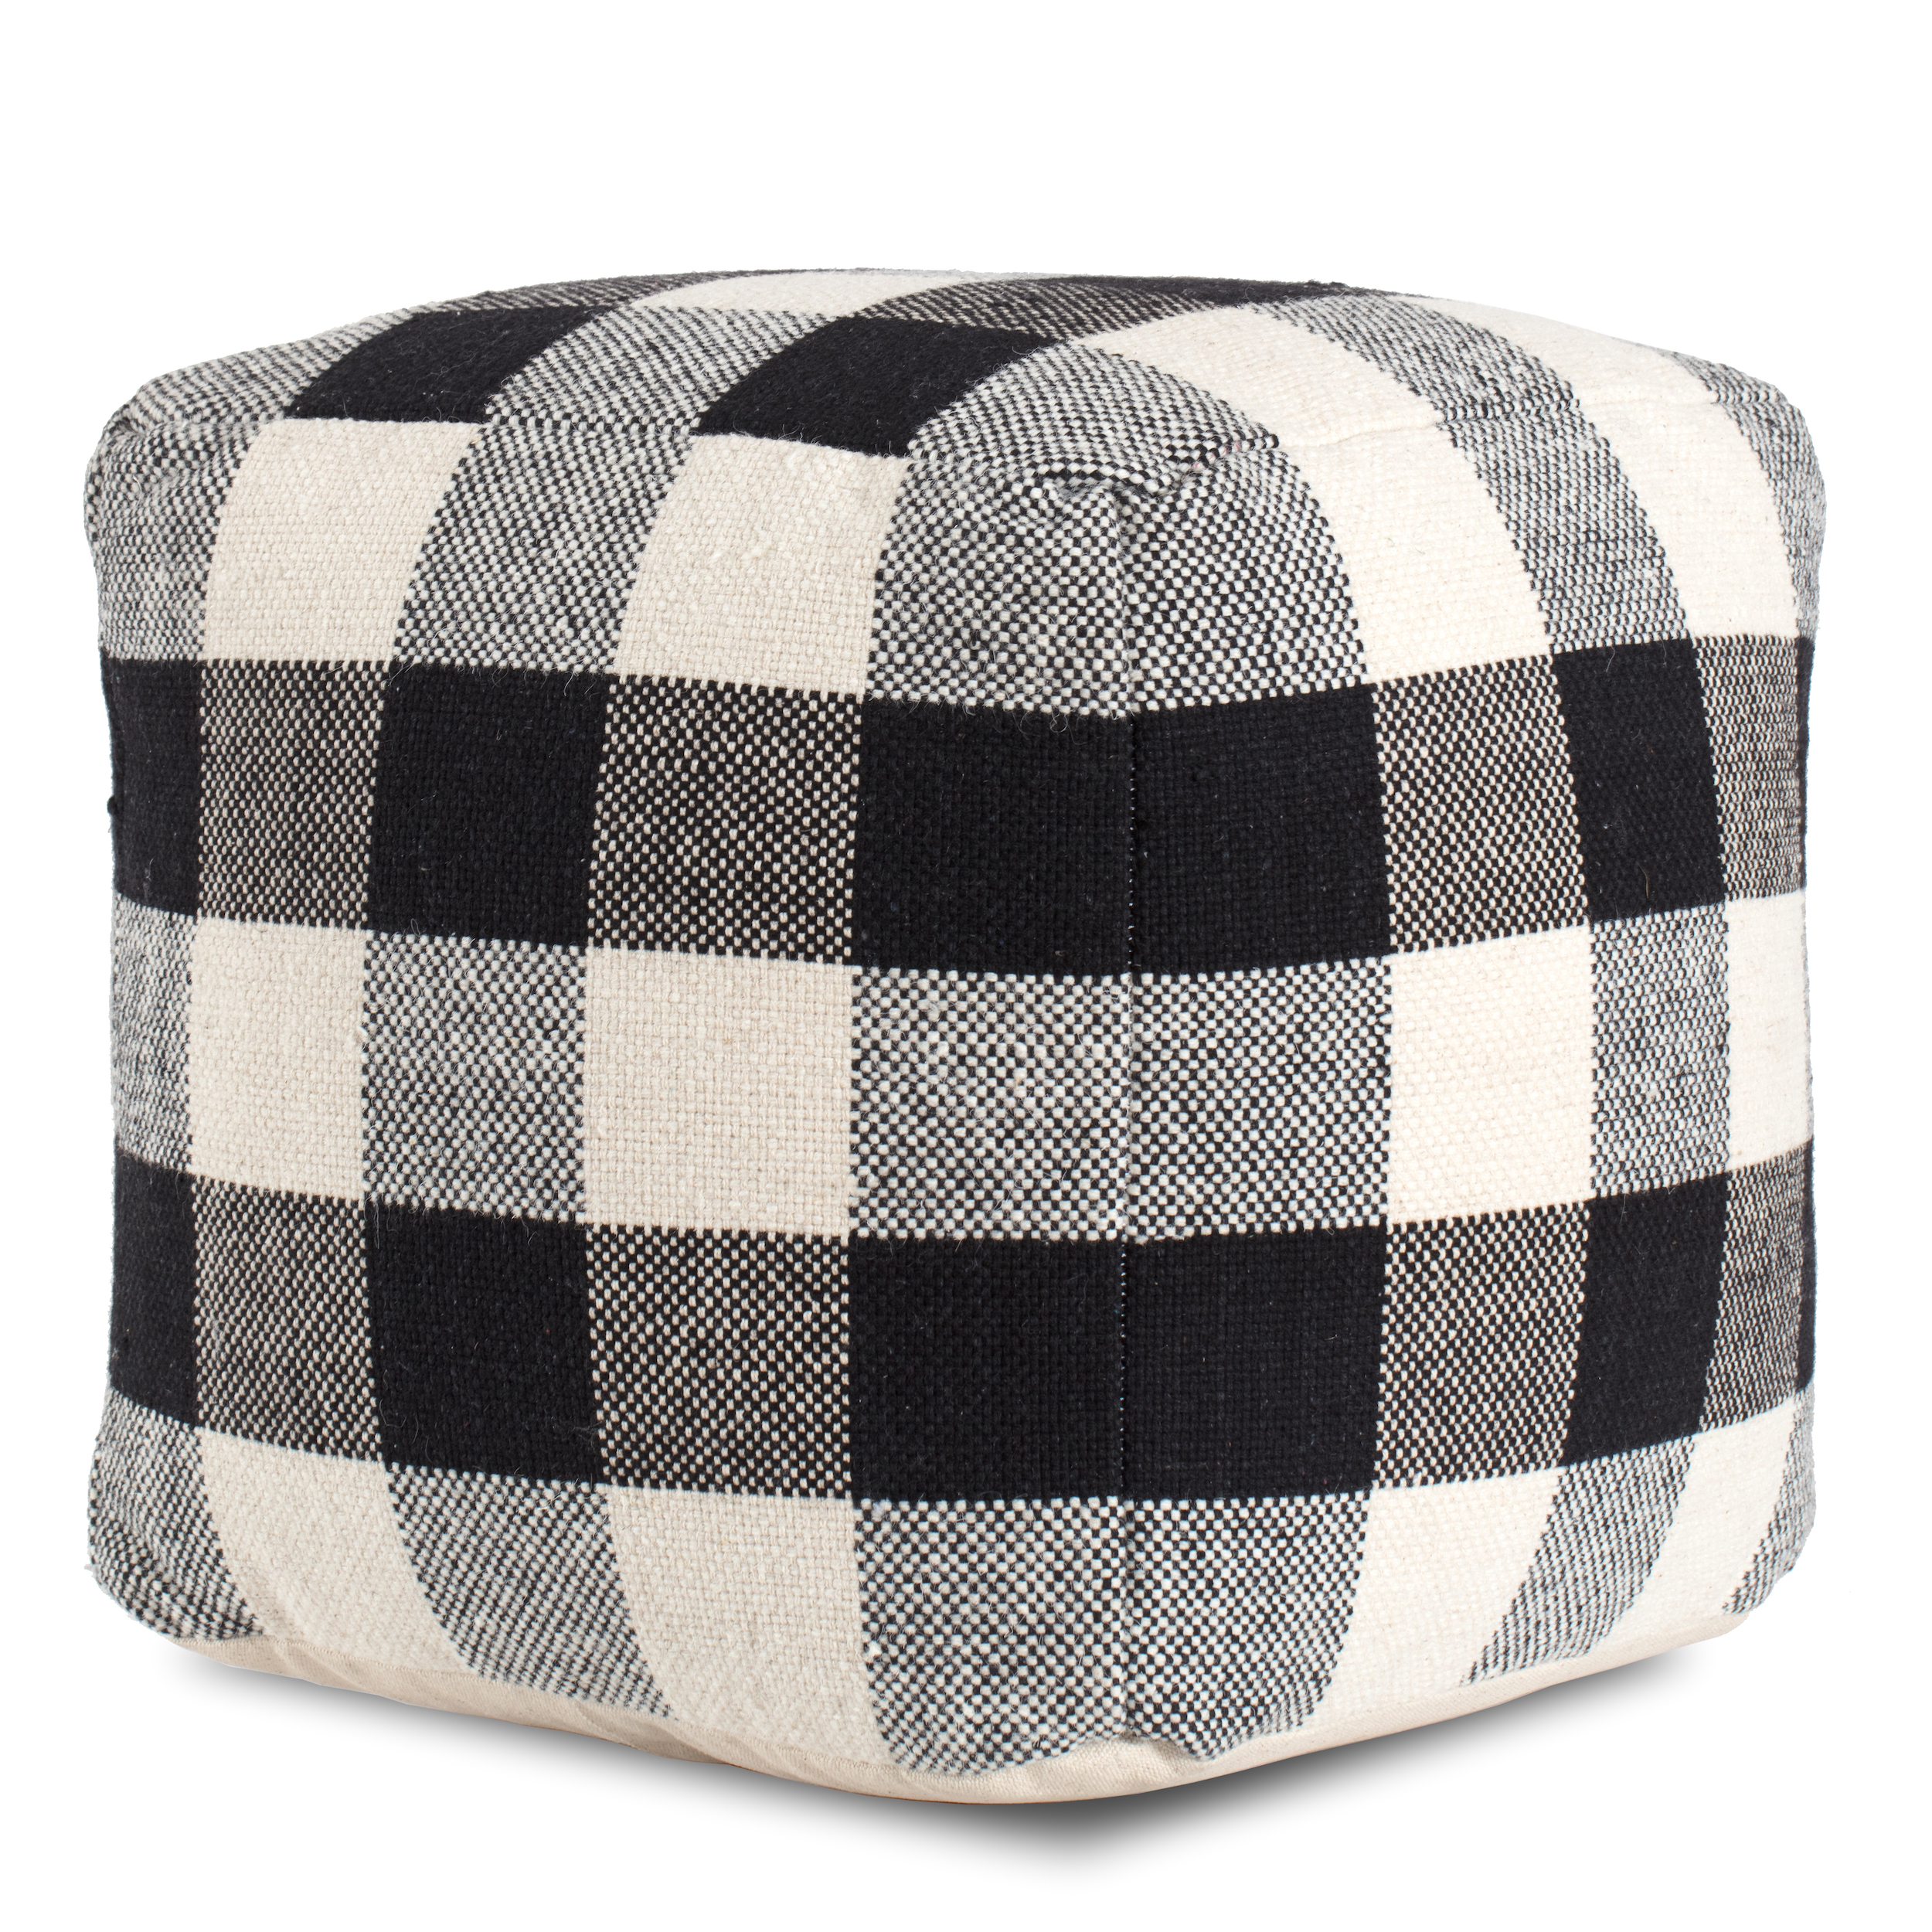 Black and white plaid poof